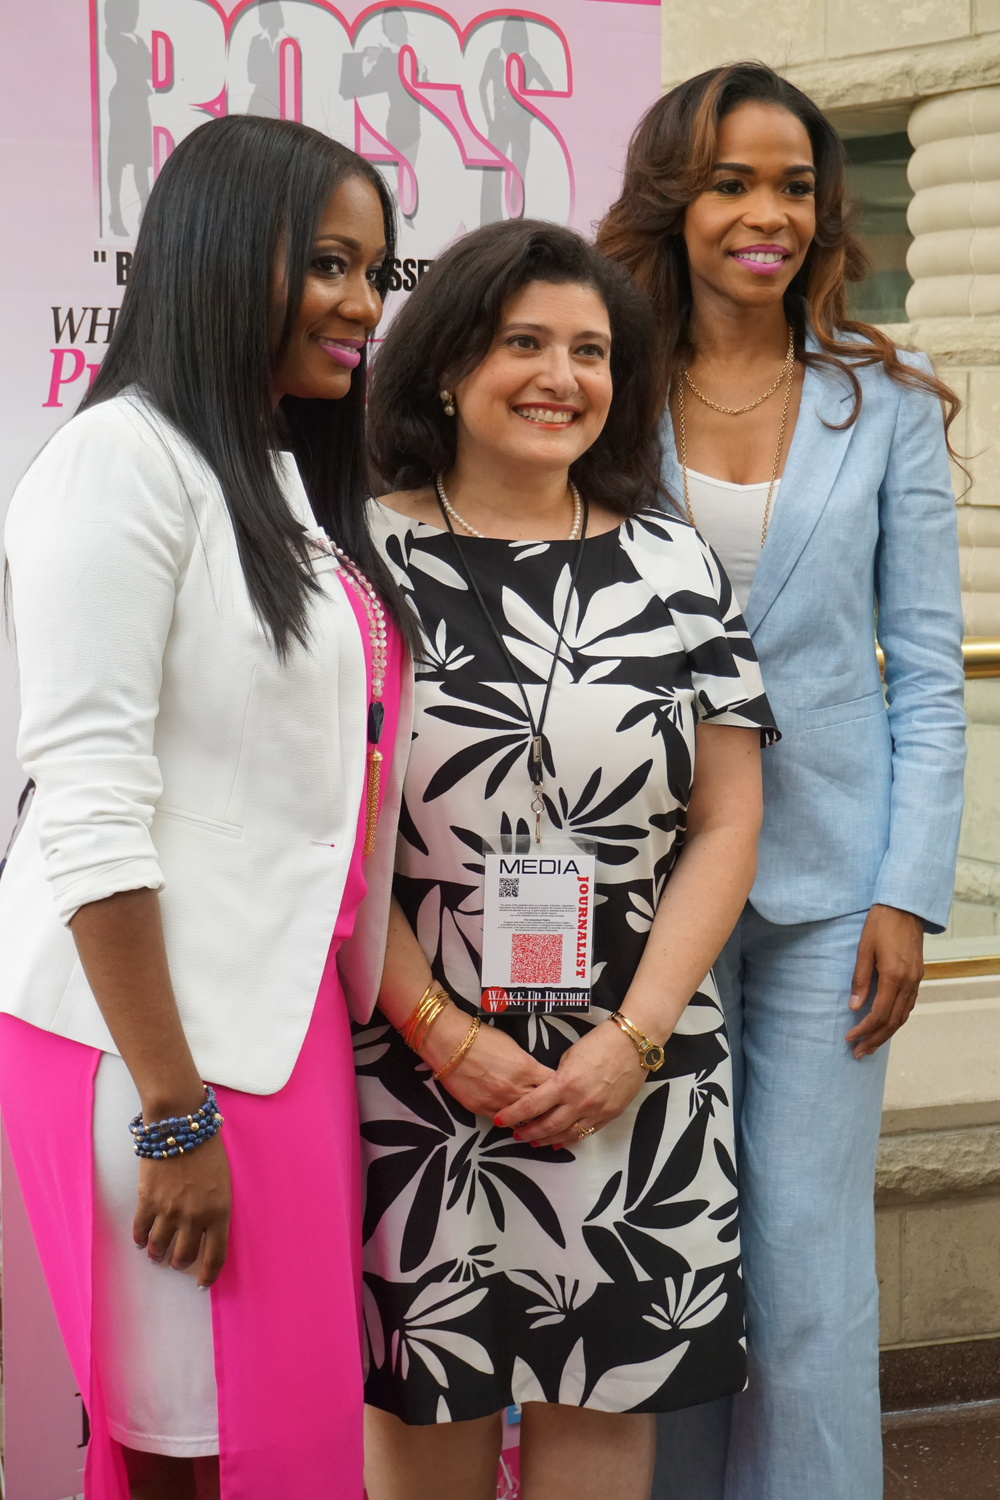 L to R: Cameka Smith Founder of The Boss Network, Wakeup Detroit Journalist, and Keynote Speaker: Michelle Williams